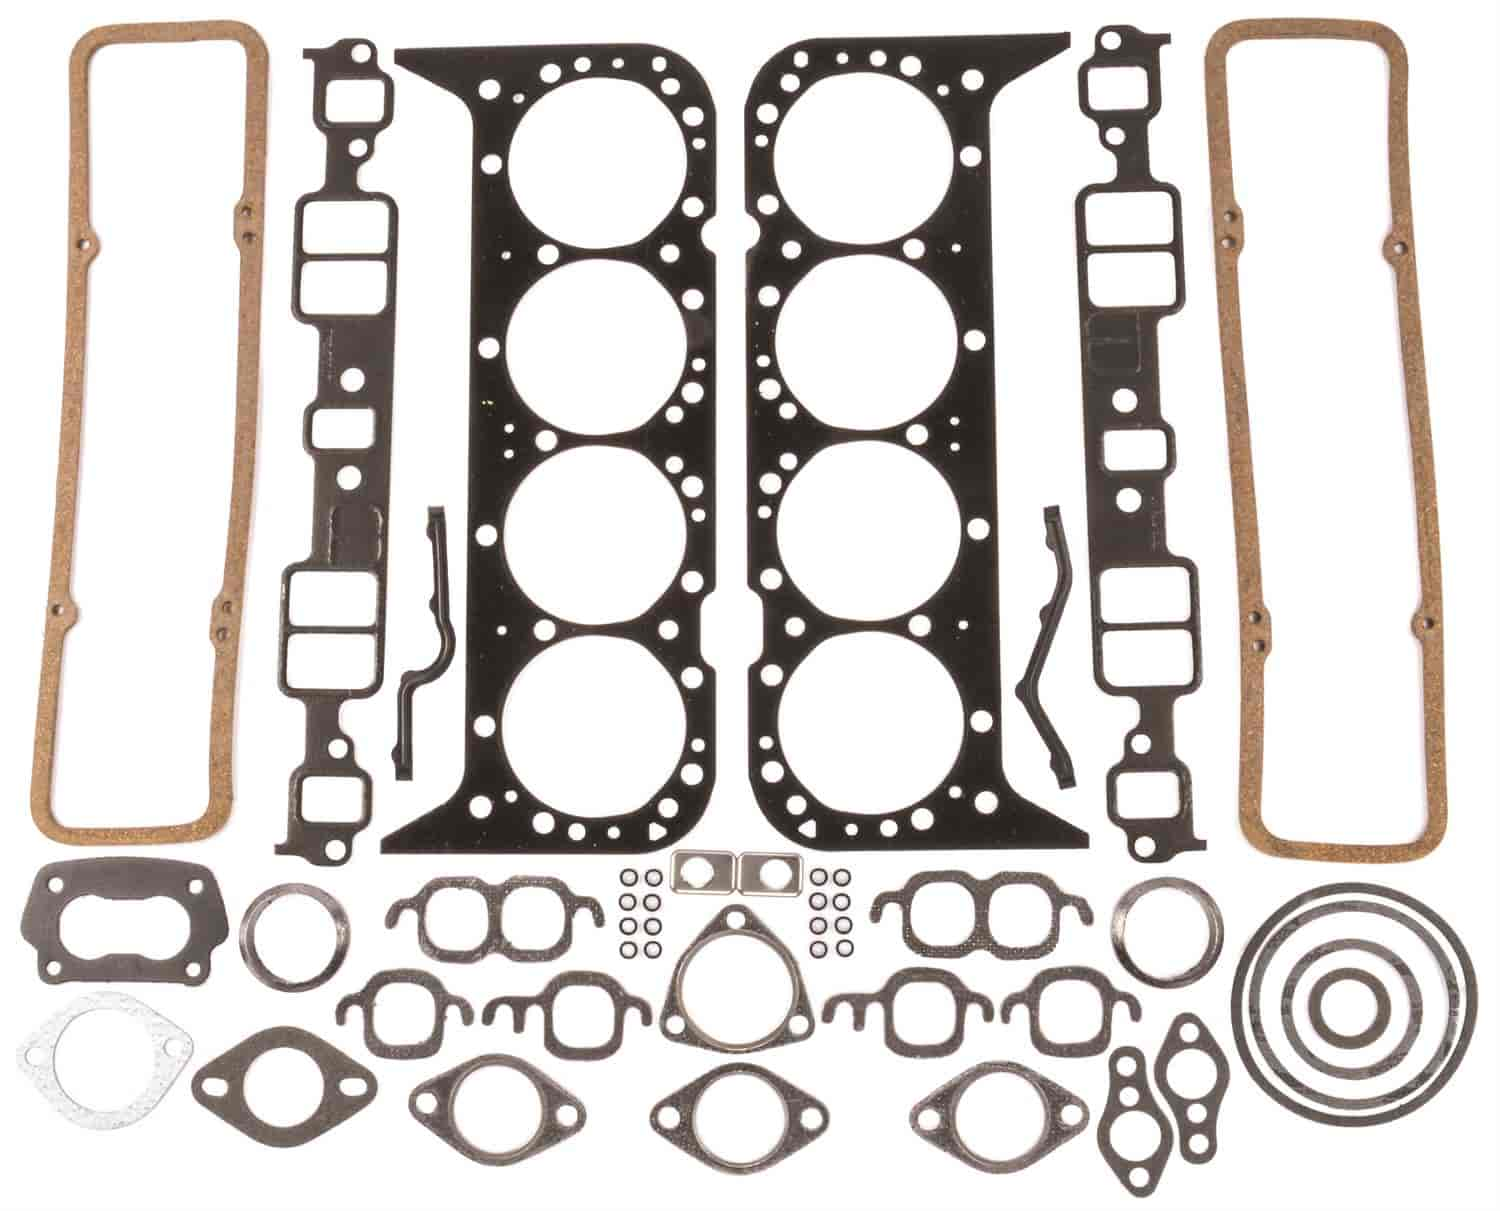 Jegs Head Gasket Set For 1957 1980 Small Block Chevy V8